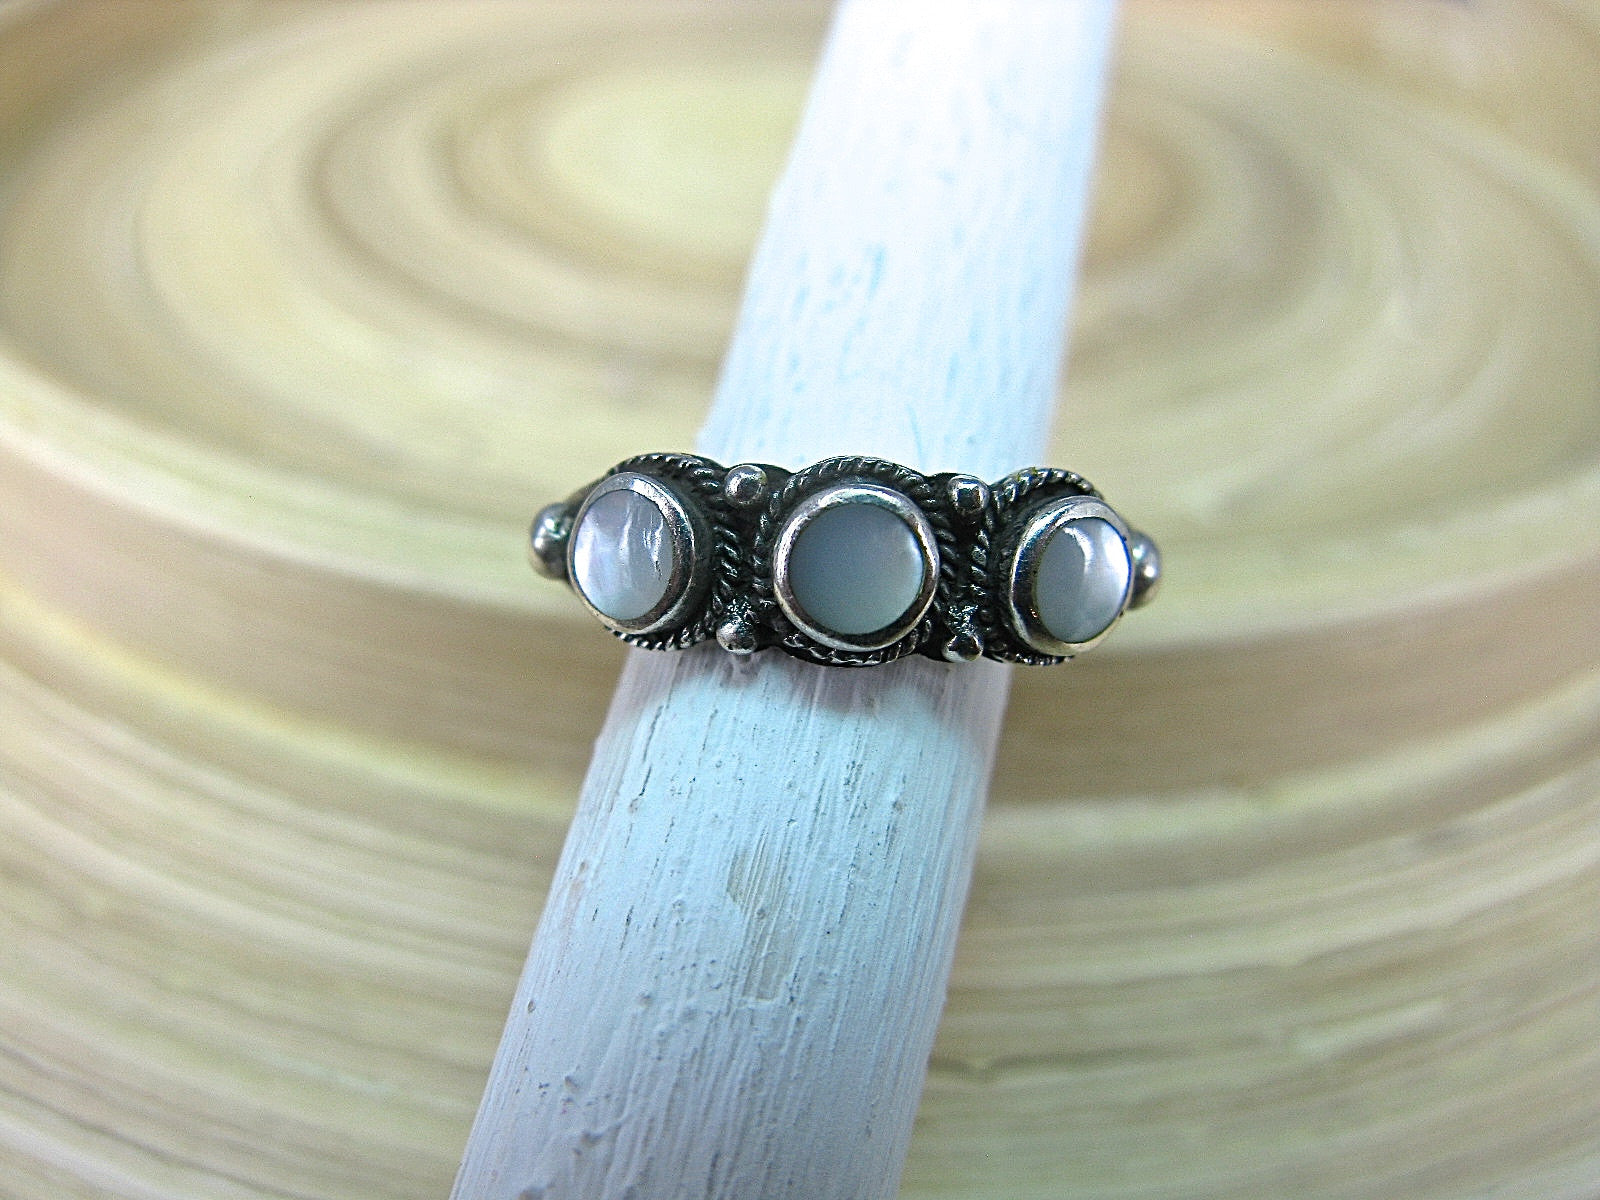 Mother of Pearl Ring Gemstone Jewelry in 925 Sterling Silver Ring Faith Owl - Faith Owl